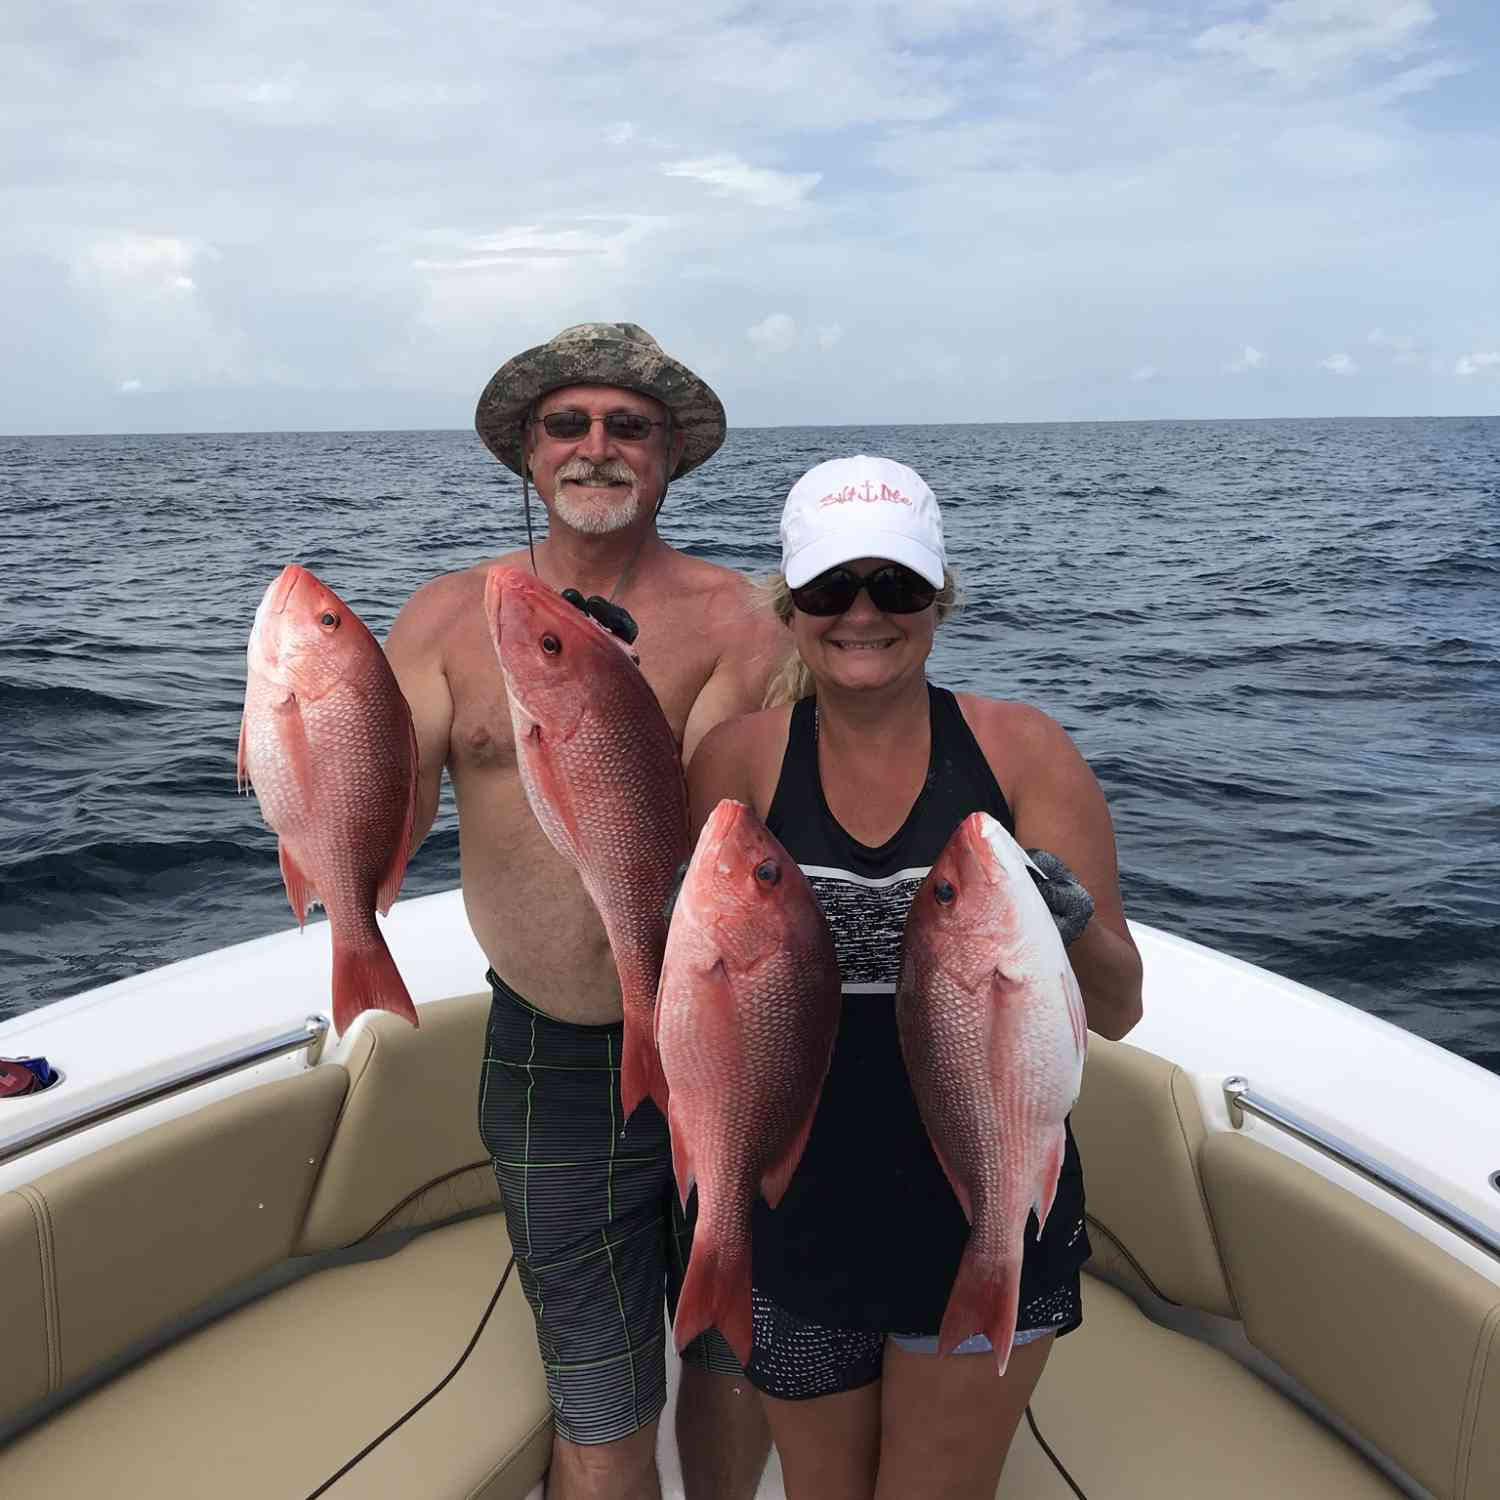 Title: Snapper in the gulf - On board their Sportsman Open 232 Center Console - Location: Mexico beach. Participating in the Photo Contest #SportsmanAugust2018